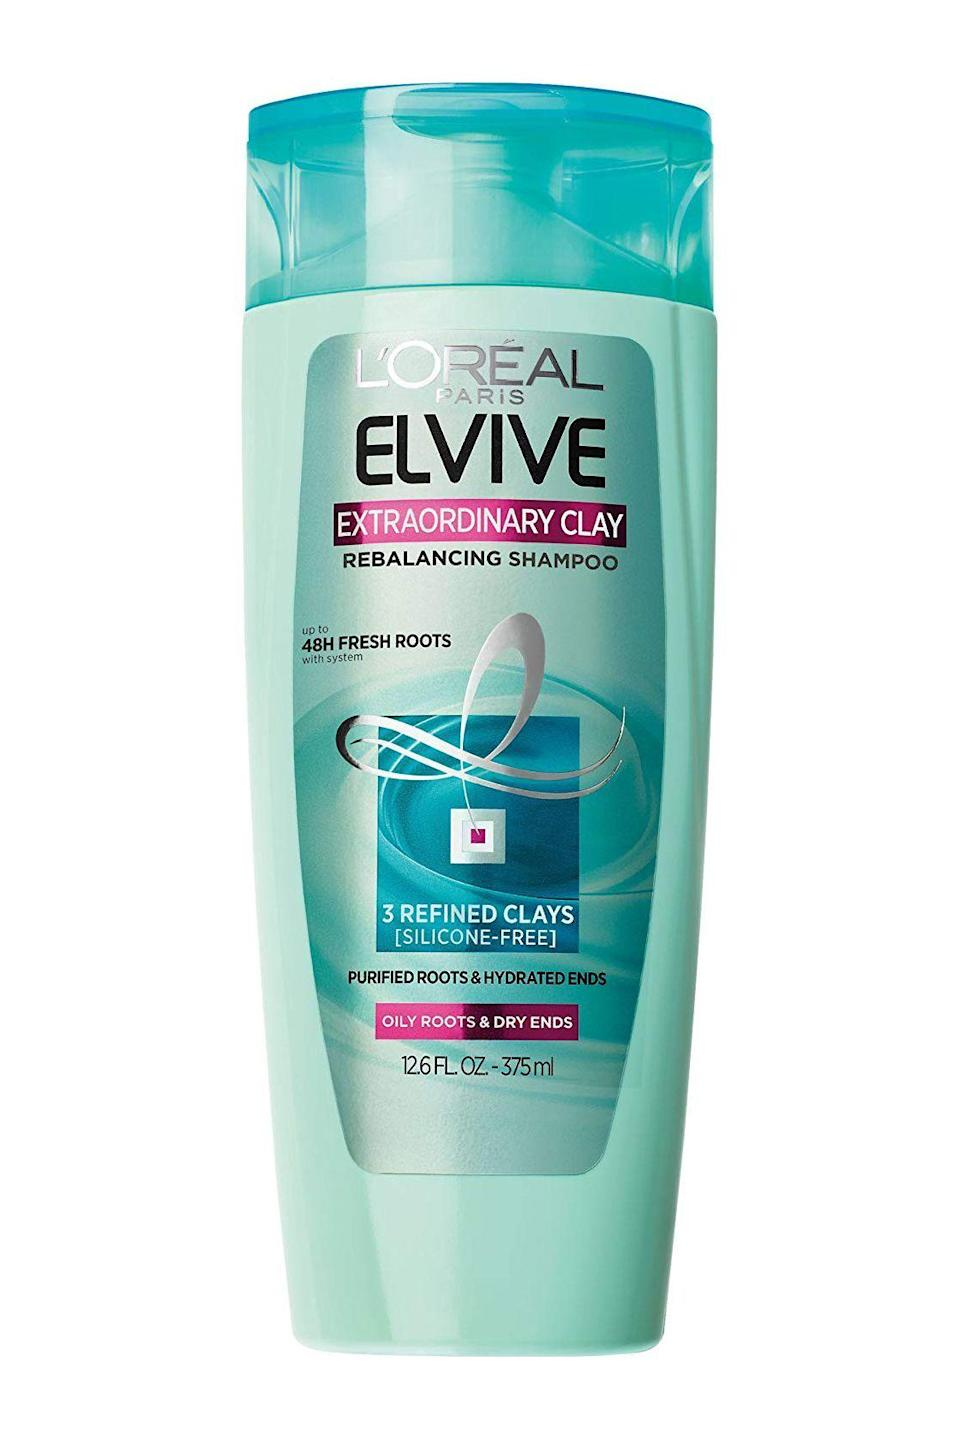 """<p><strong>'l''oreal paris'</strong></p><p>lorealparisusa.com</p><p><strong>$4.99</strong></p><p><a href=""""https://www.lorealparisusa.com/products/hair-care/products/shampoo/elvive-extraordinary-clay-shampoo.aspx"""" rel=""""nofollow noopener"""" target=""""_blank"""" data-ylk=""""slk:Shop Now"""" class=""""link rapid-noclick-resp"""">Shop Now</a></p><p><a href=""""https://www.cosmopolitan.com/style-beauty/beauty/g19827523/best-shampoo-for-oily-greasy-hair/"""" rel=""""nofollow noopener"""" target=""""_blank"""" data-ylk=""""slk:Greasy roots"""" class=""""link rapid-noclick-resp"""">Greasy roots</a> + dry, damaged ends = combination hair—a type that requires special care so you don't accidentally dry it out or make it oilier. Enter: this silicone-free shampoo that <strong>helps balance both your roots <em>and </em>ends</strong> with a combo of hydrating and oil-absorbing clays.</p>"""